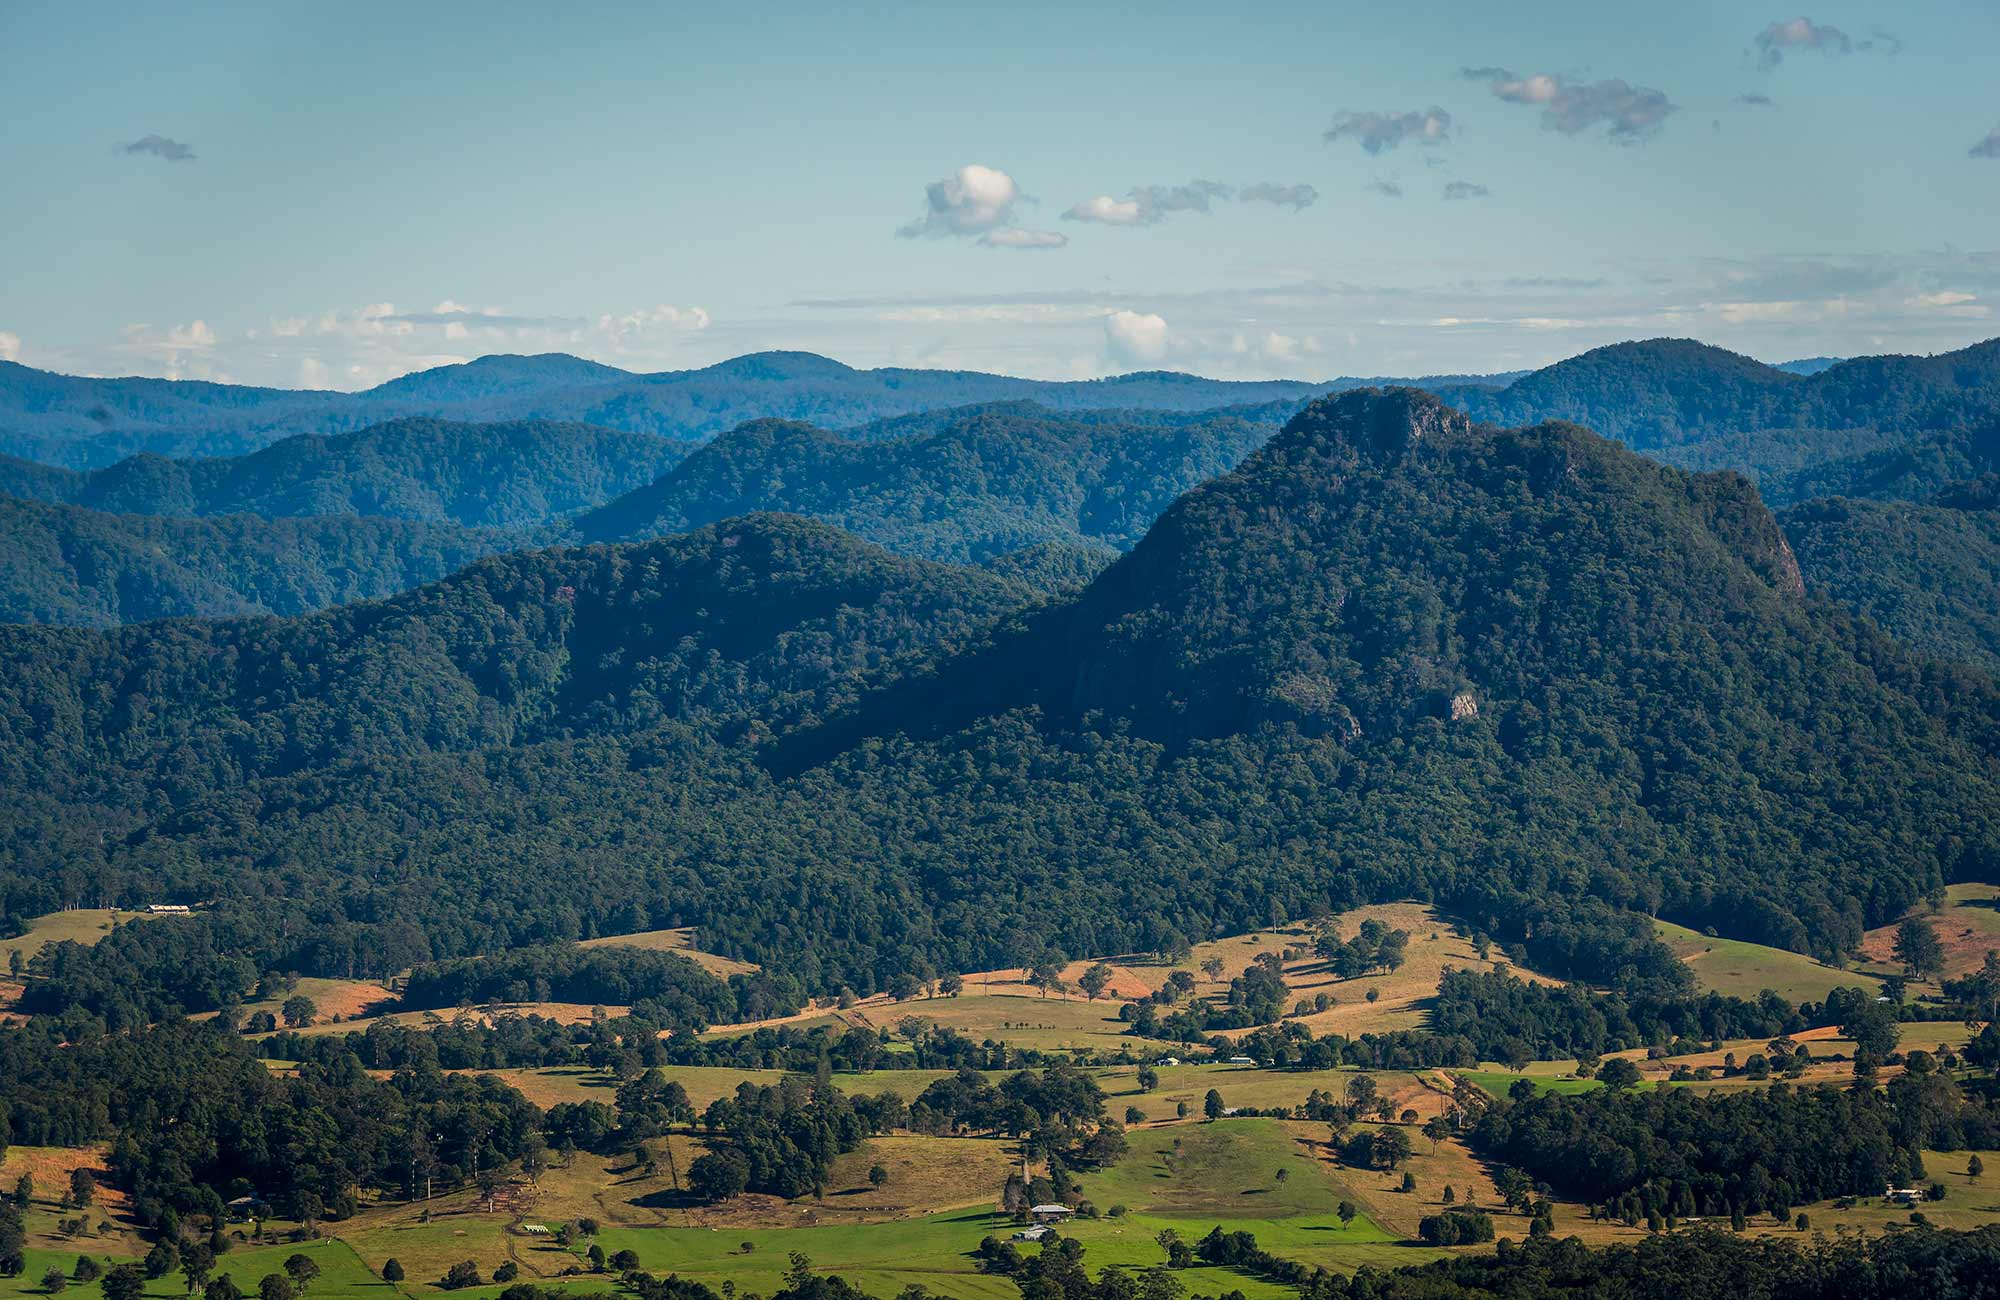 Newbys Creek lookout, Coorabakh National Park. Photo: John Spencer